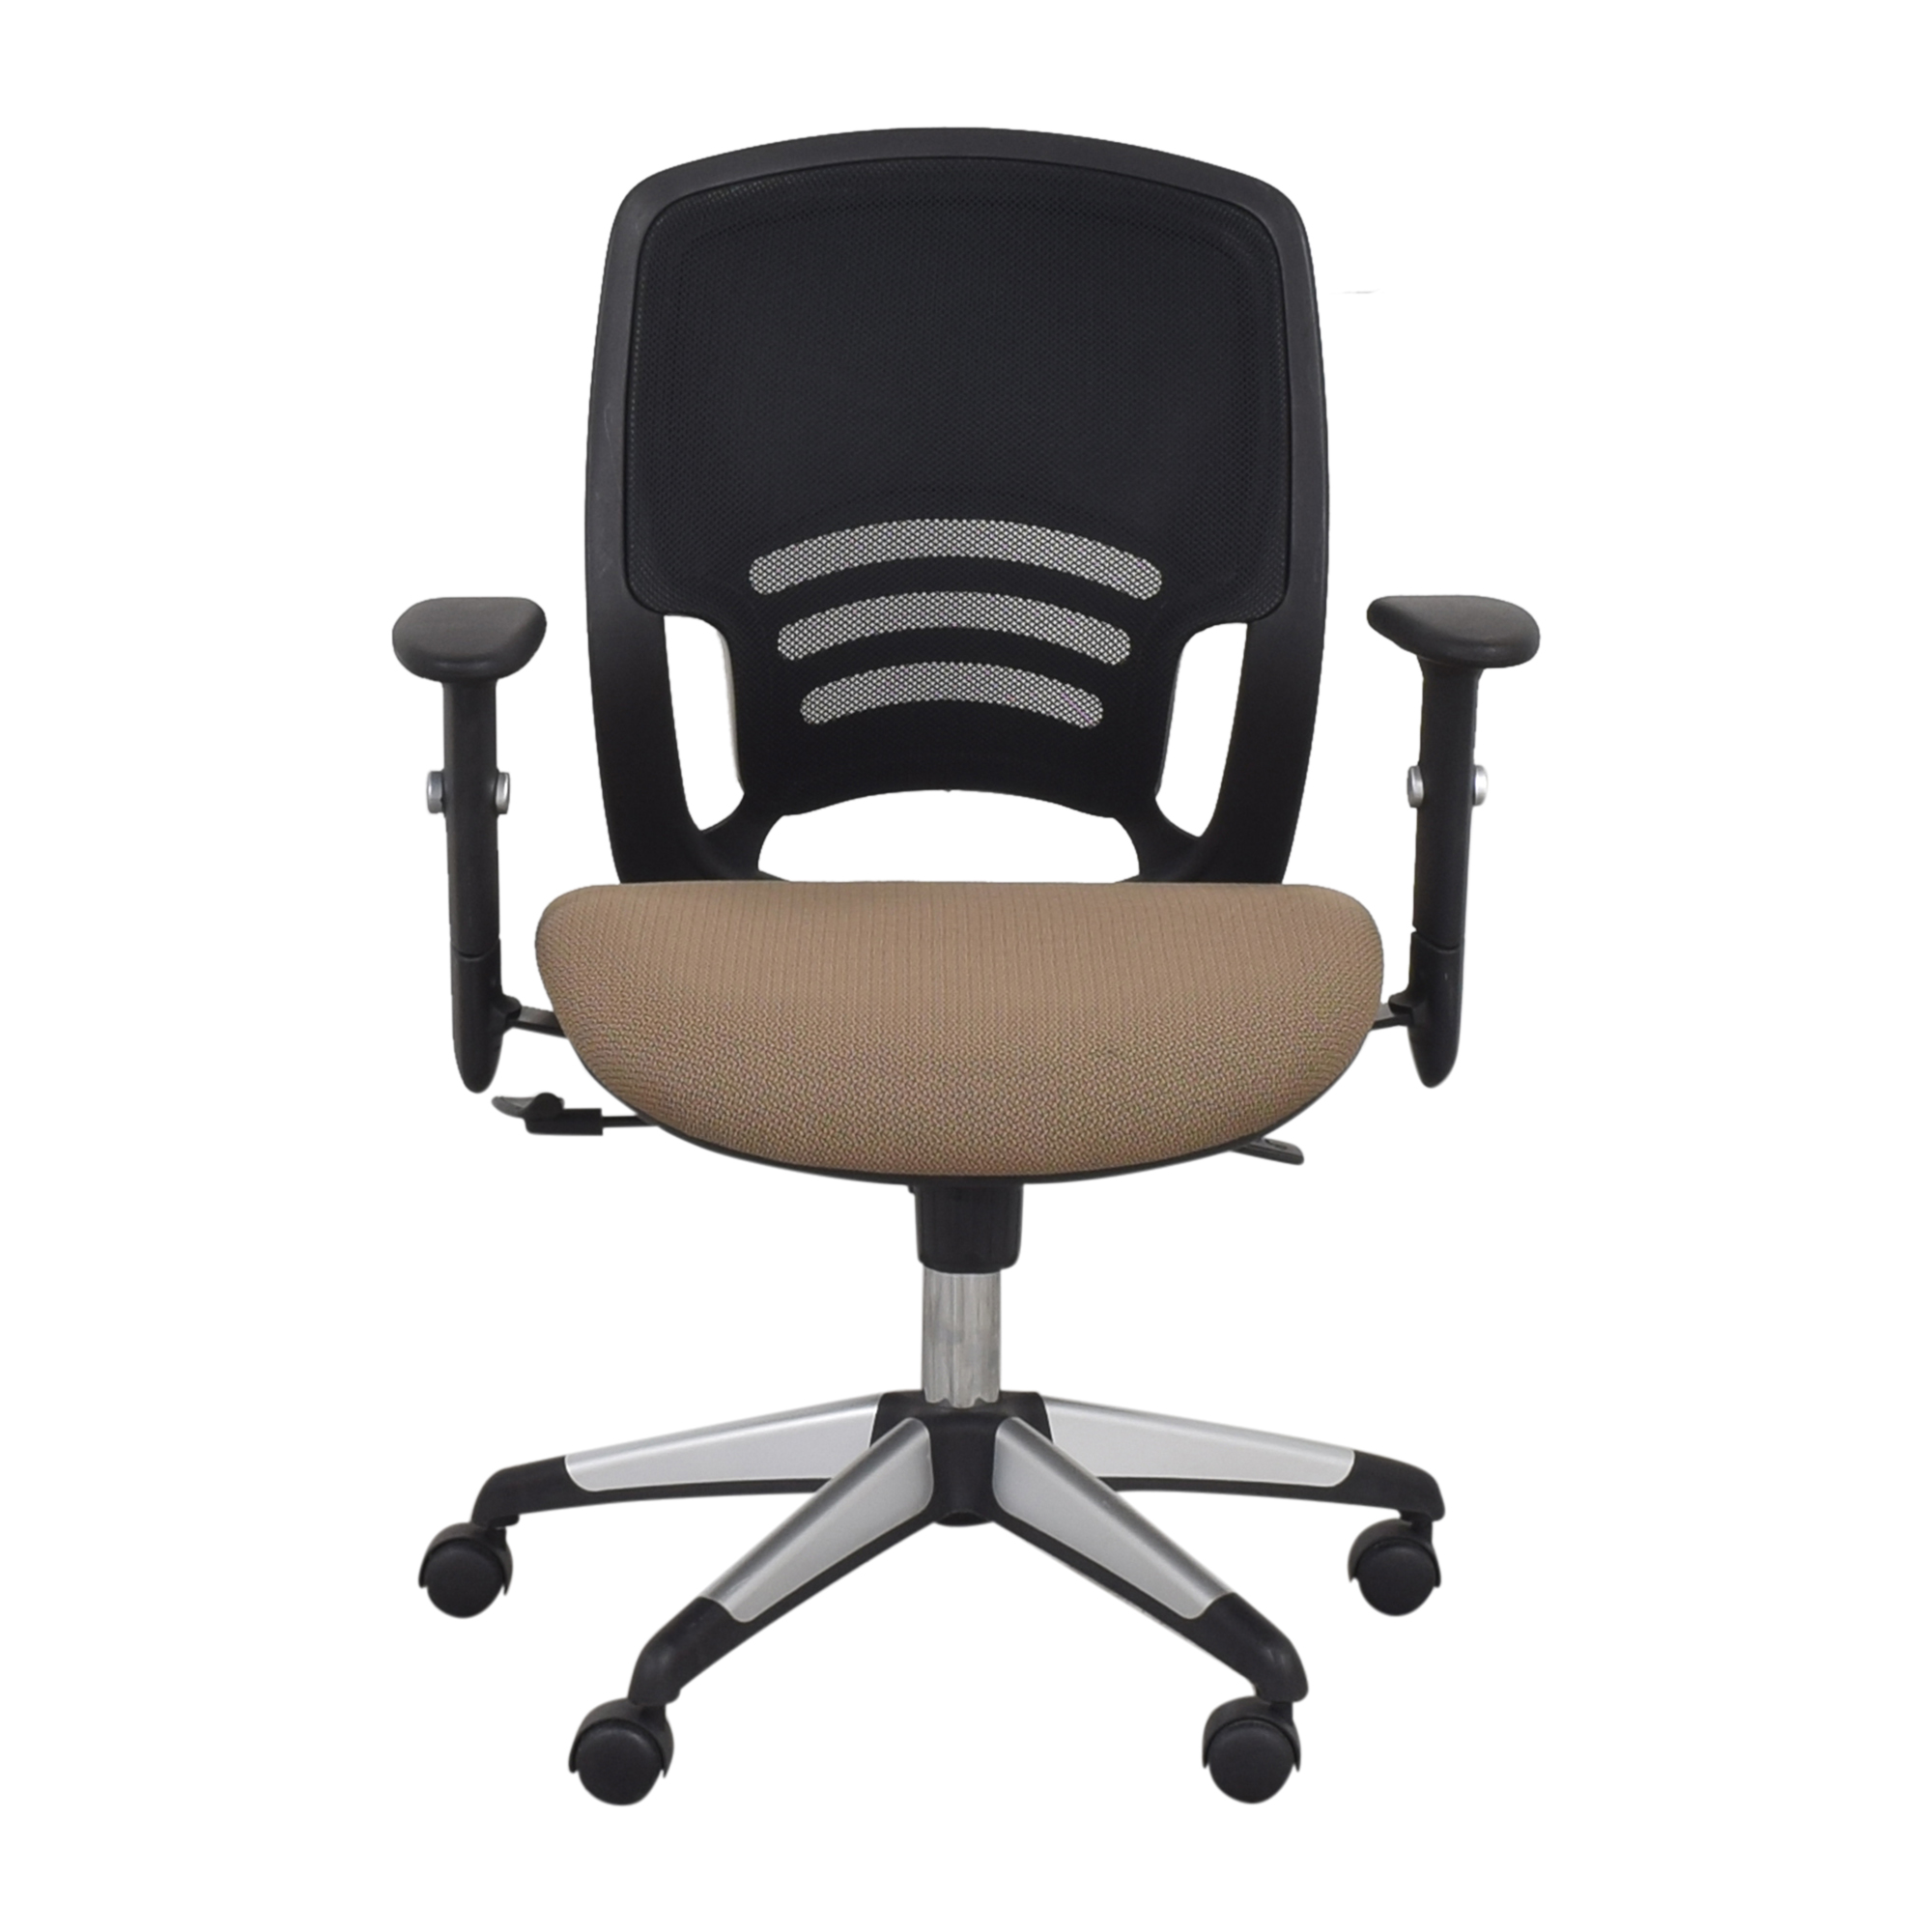 buy Offices to Go Offices to Go Low Mesh Back Swivel Chair online